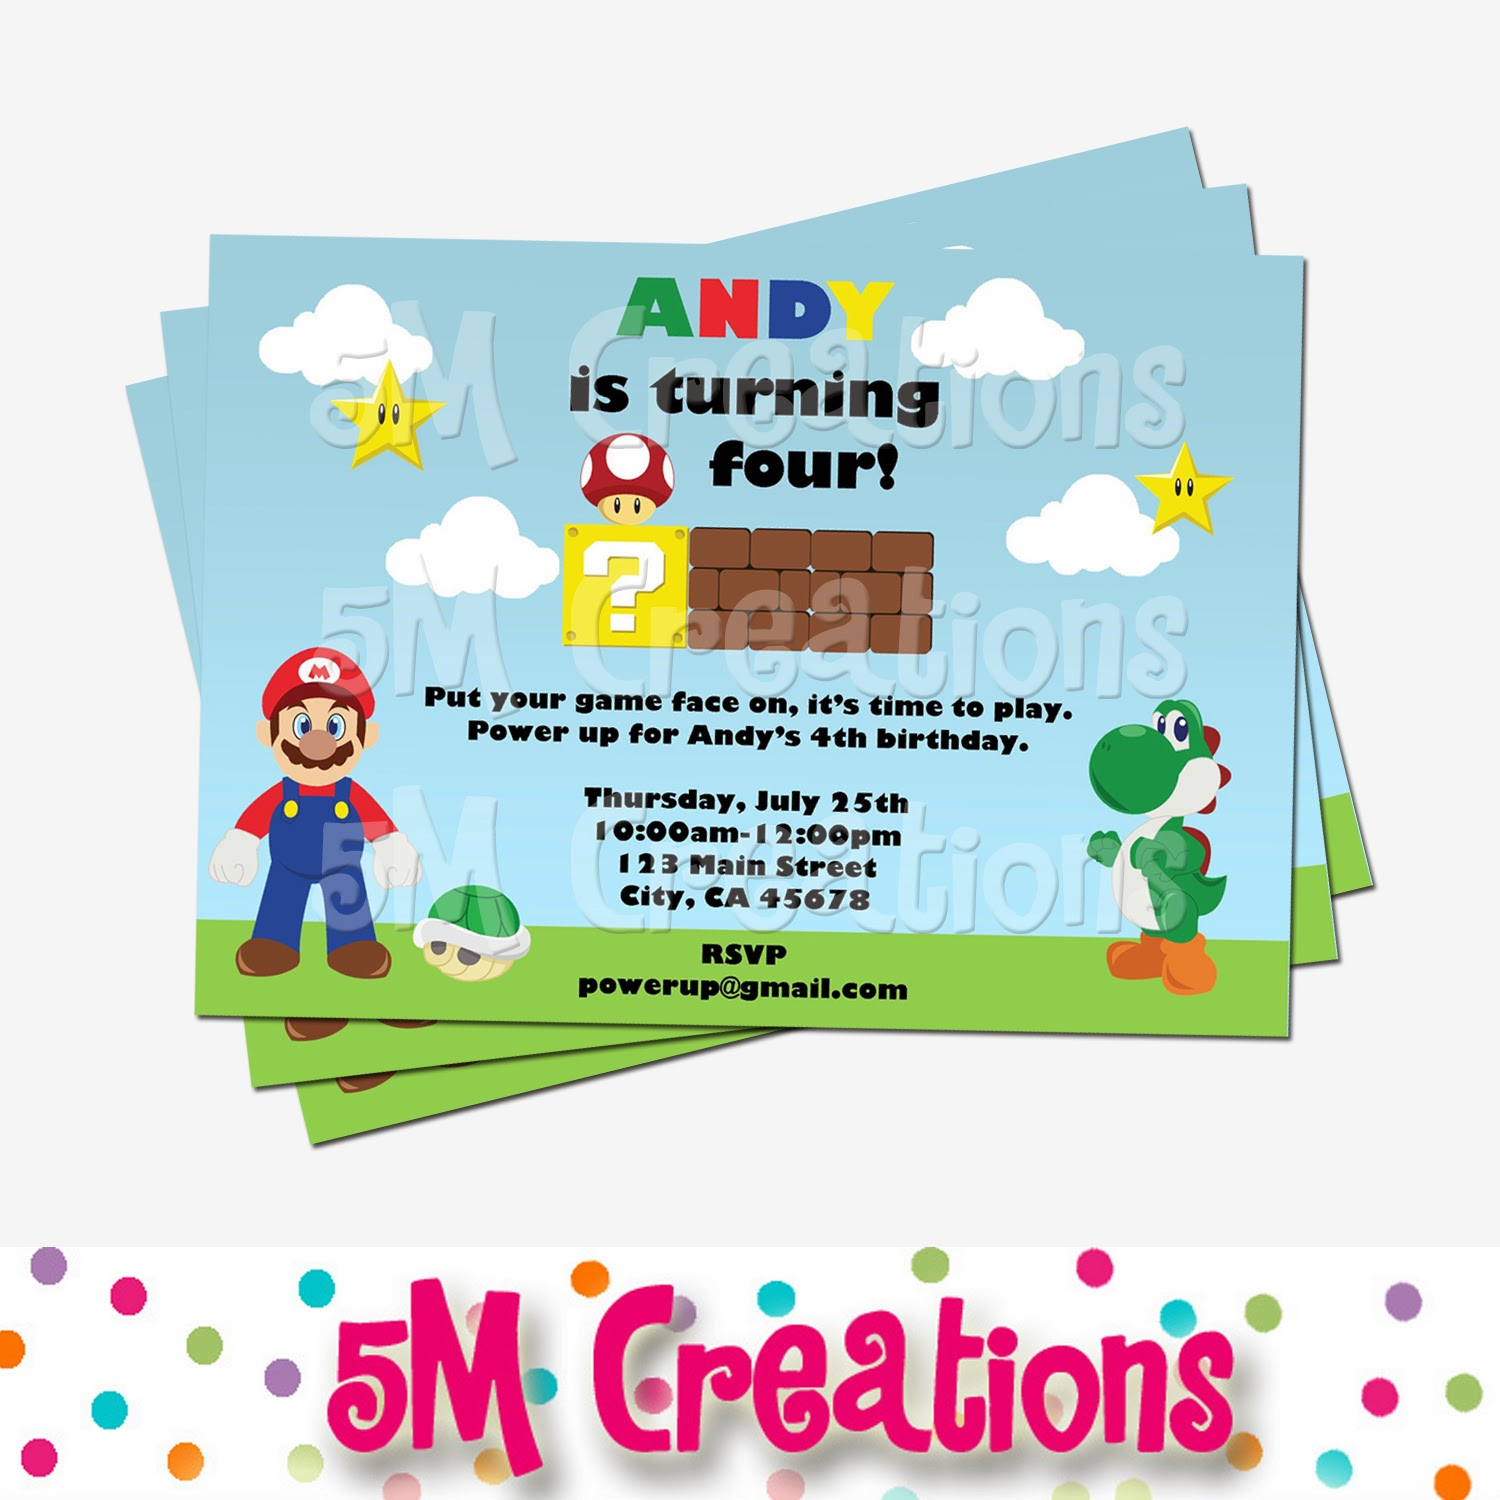 5m creations mario inspired birthday party mario party are available in our printable mario party packageinspired by your favorite characters we also have a fun printable mario invitation get powered up monicamarmolfo Gallery